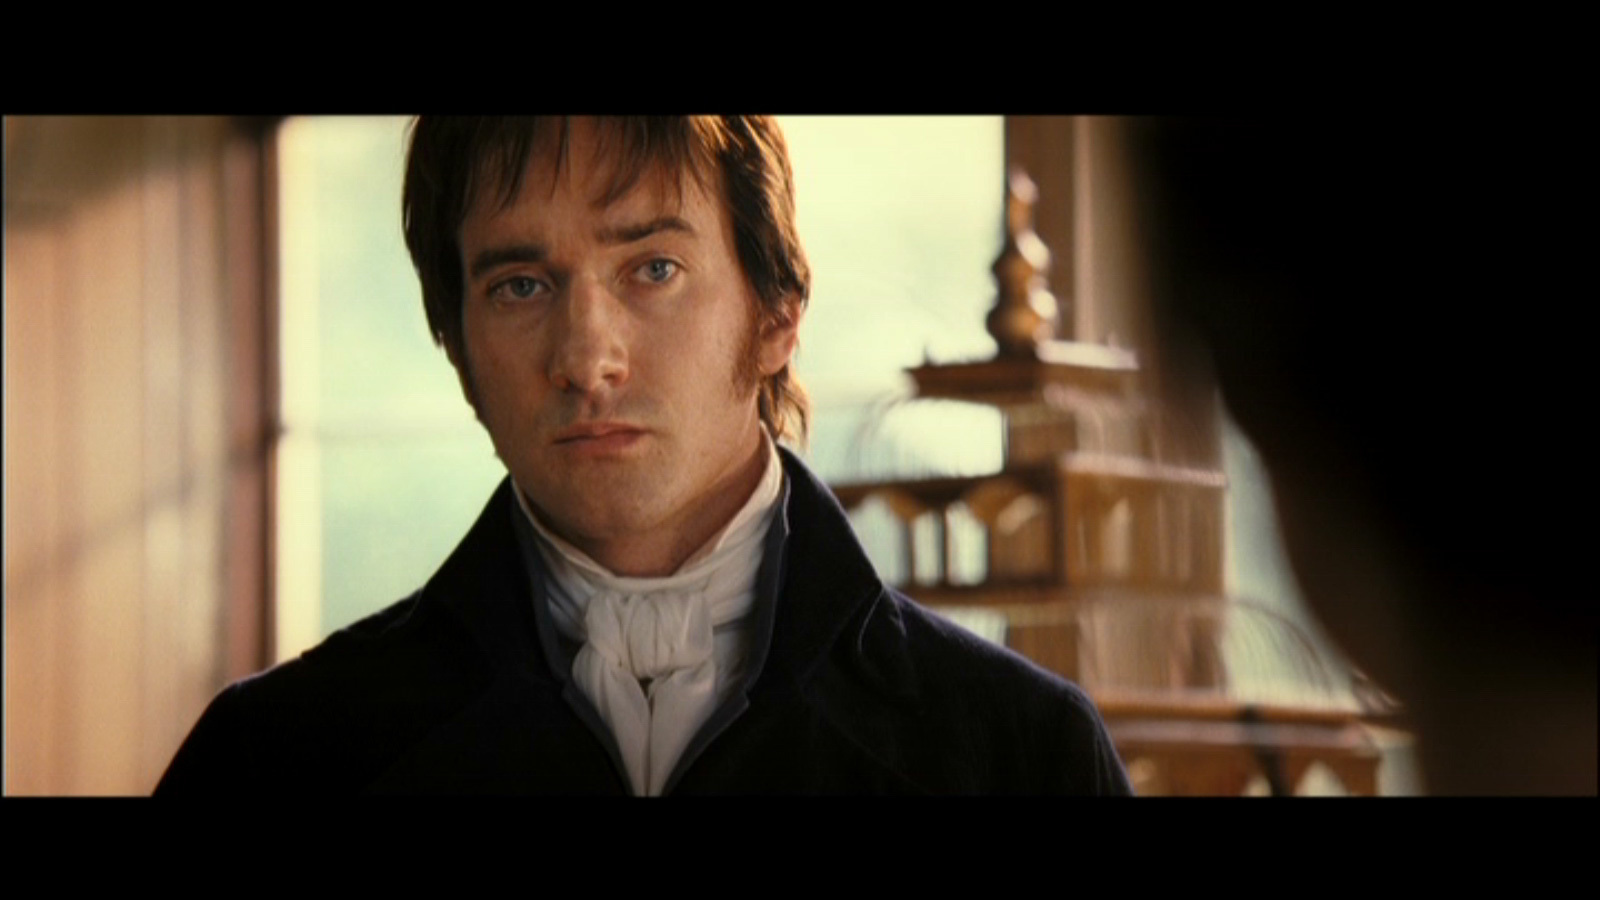 Mr. Wickham in Pride and Prejudice: Character Analysis